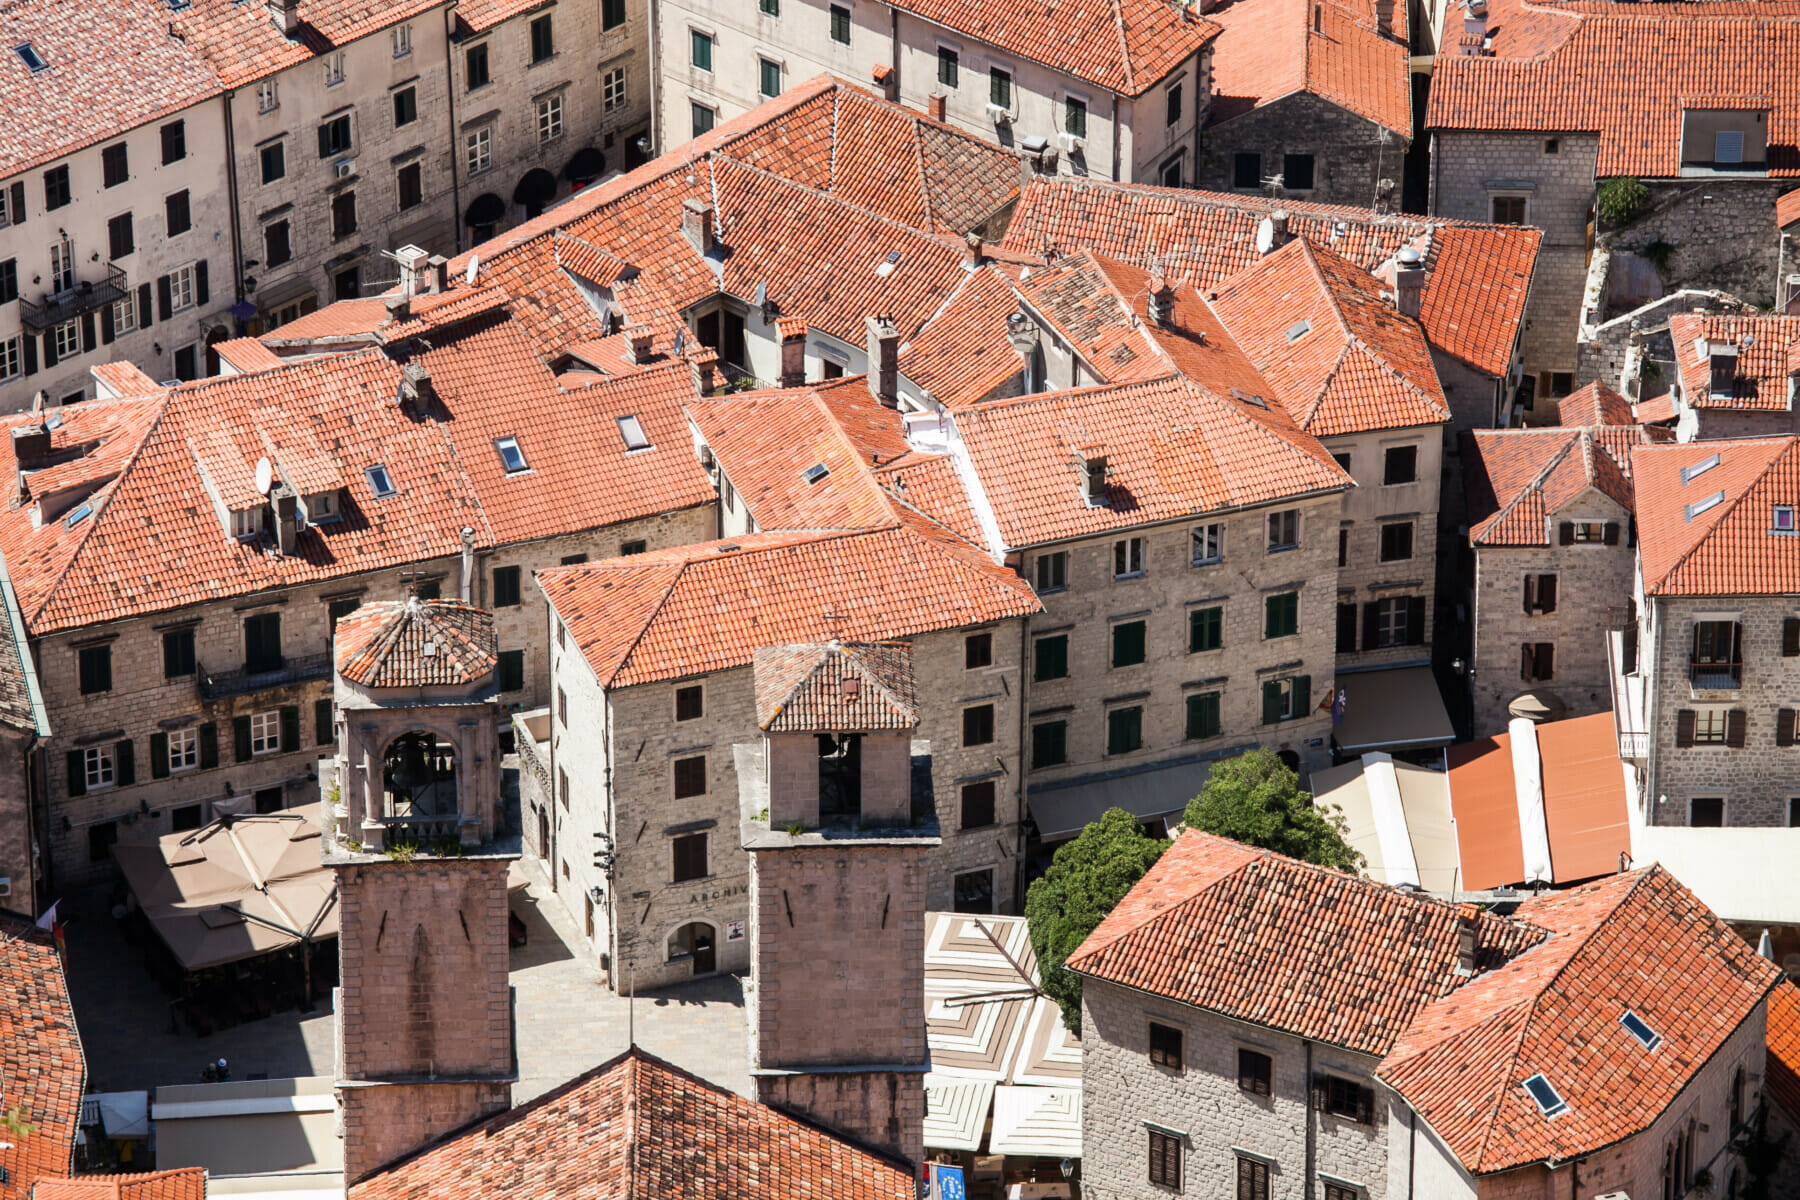 Top view of the red-tiled roofs in the old town of Kotor, Montenegro.